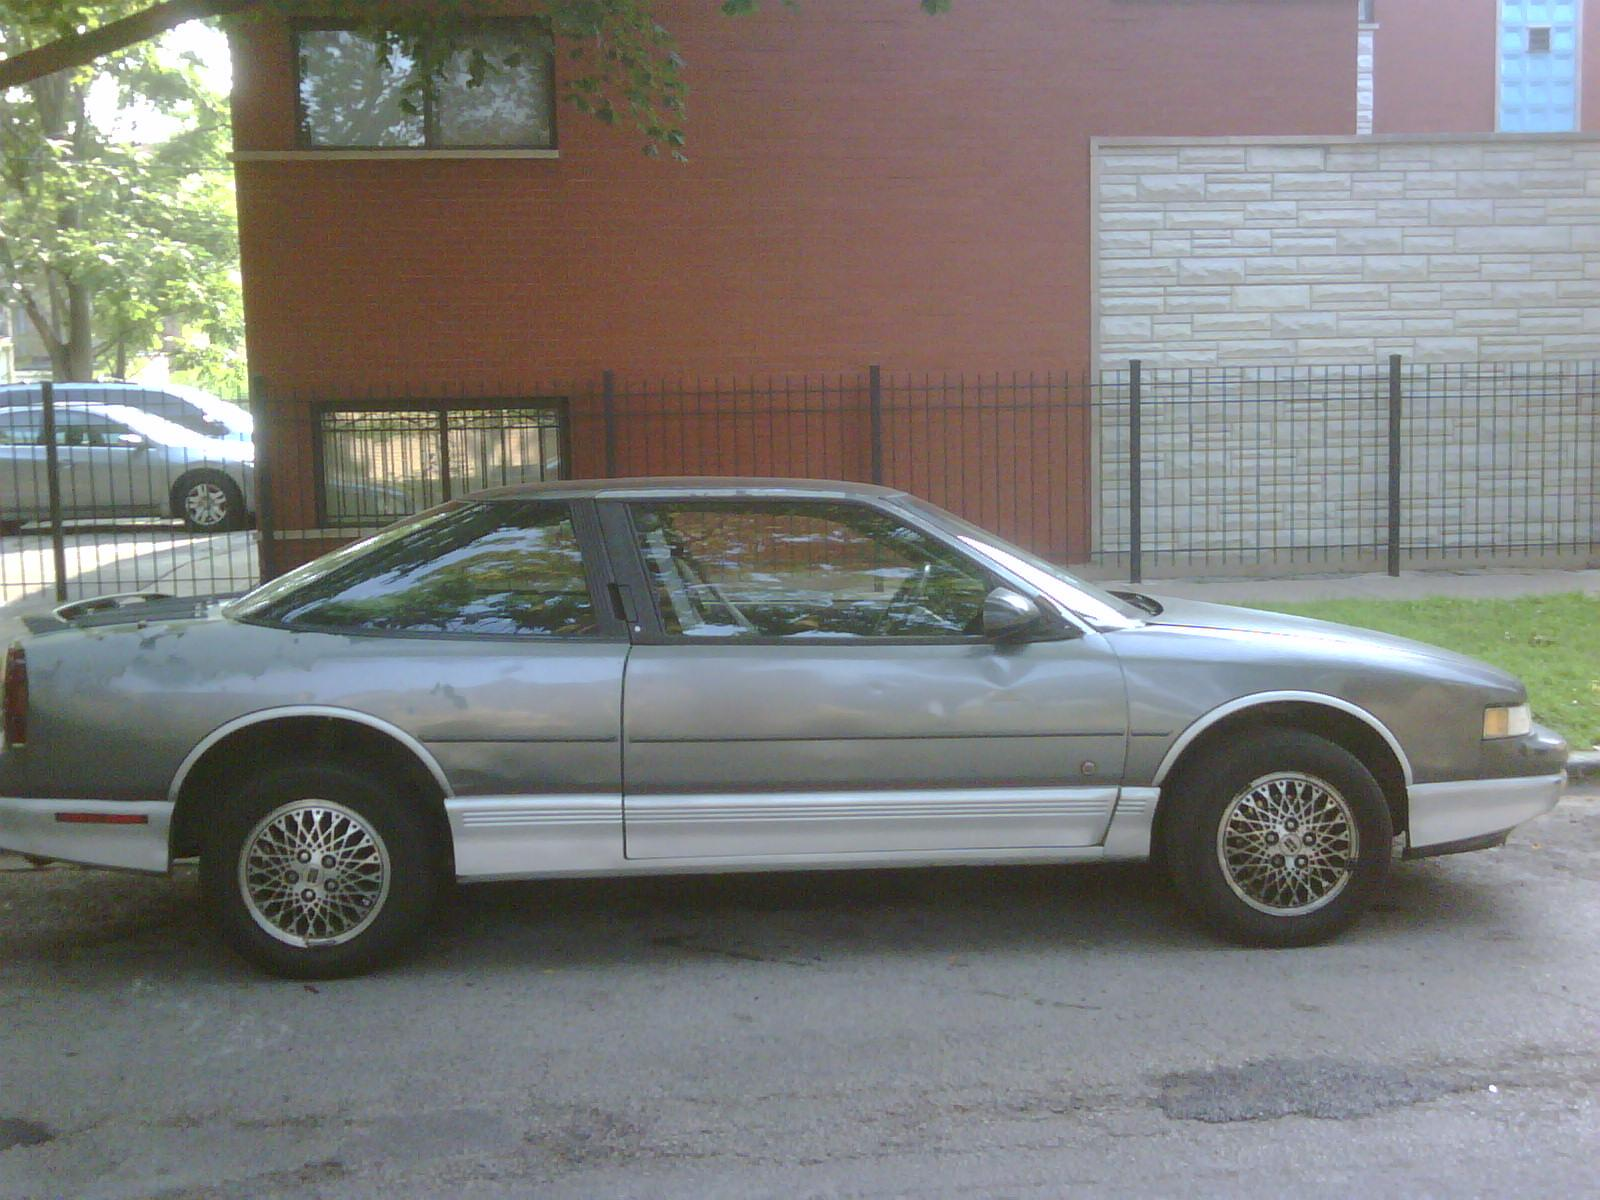 dch_2 1989 Oldsmobile Cutlass Supreme Specs, Photos ...